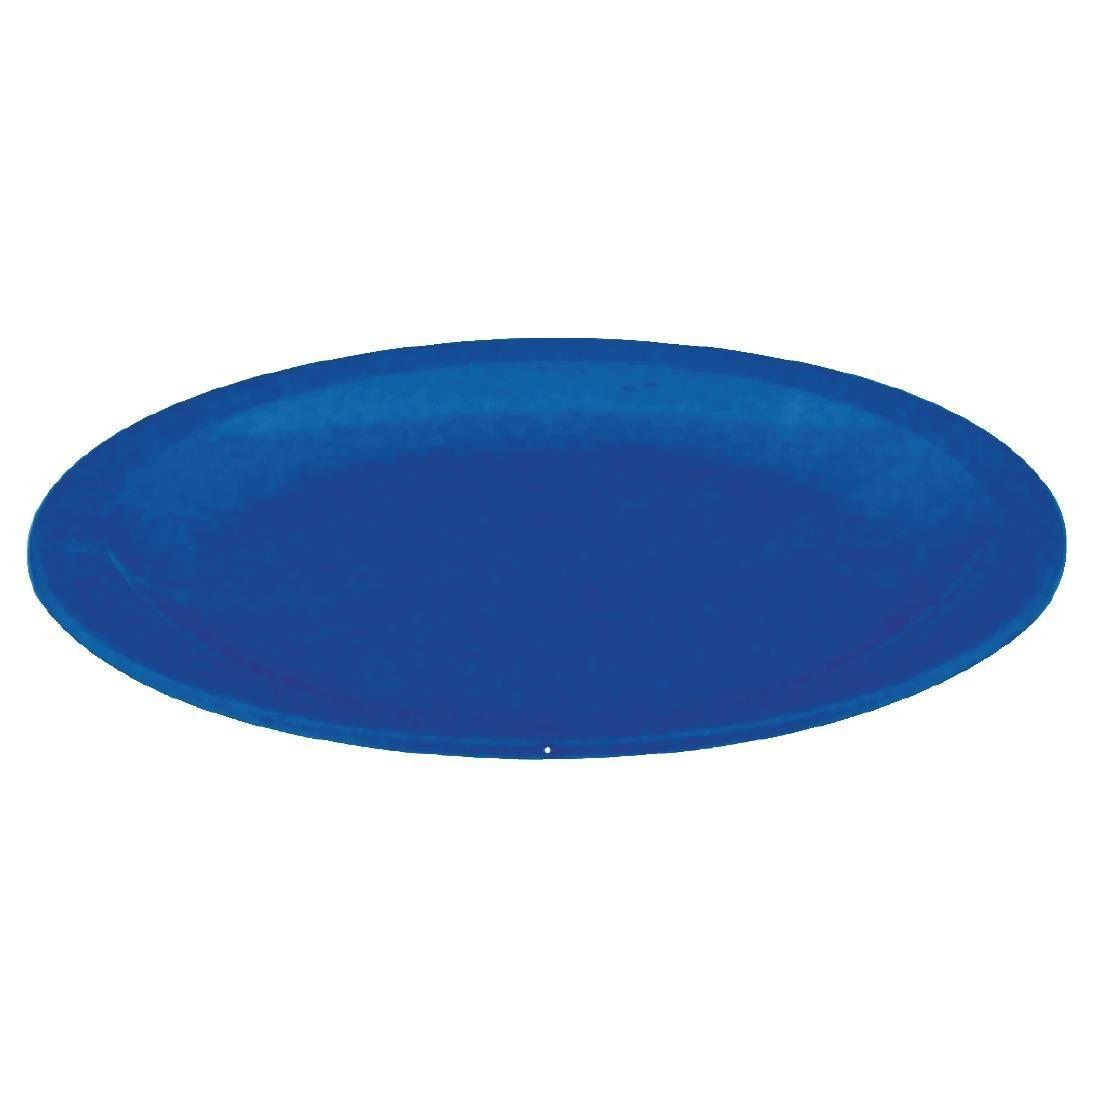 Kristallon Polycarbonate Plates Blue 230mm - Case 12 - CB769